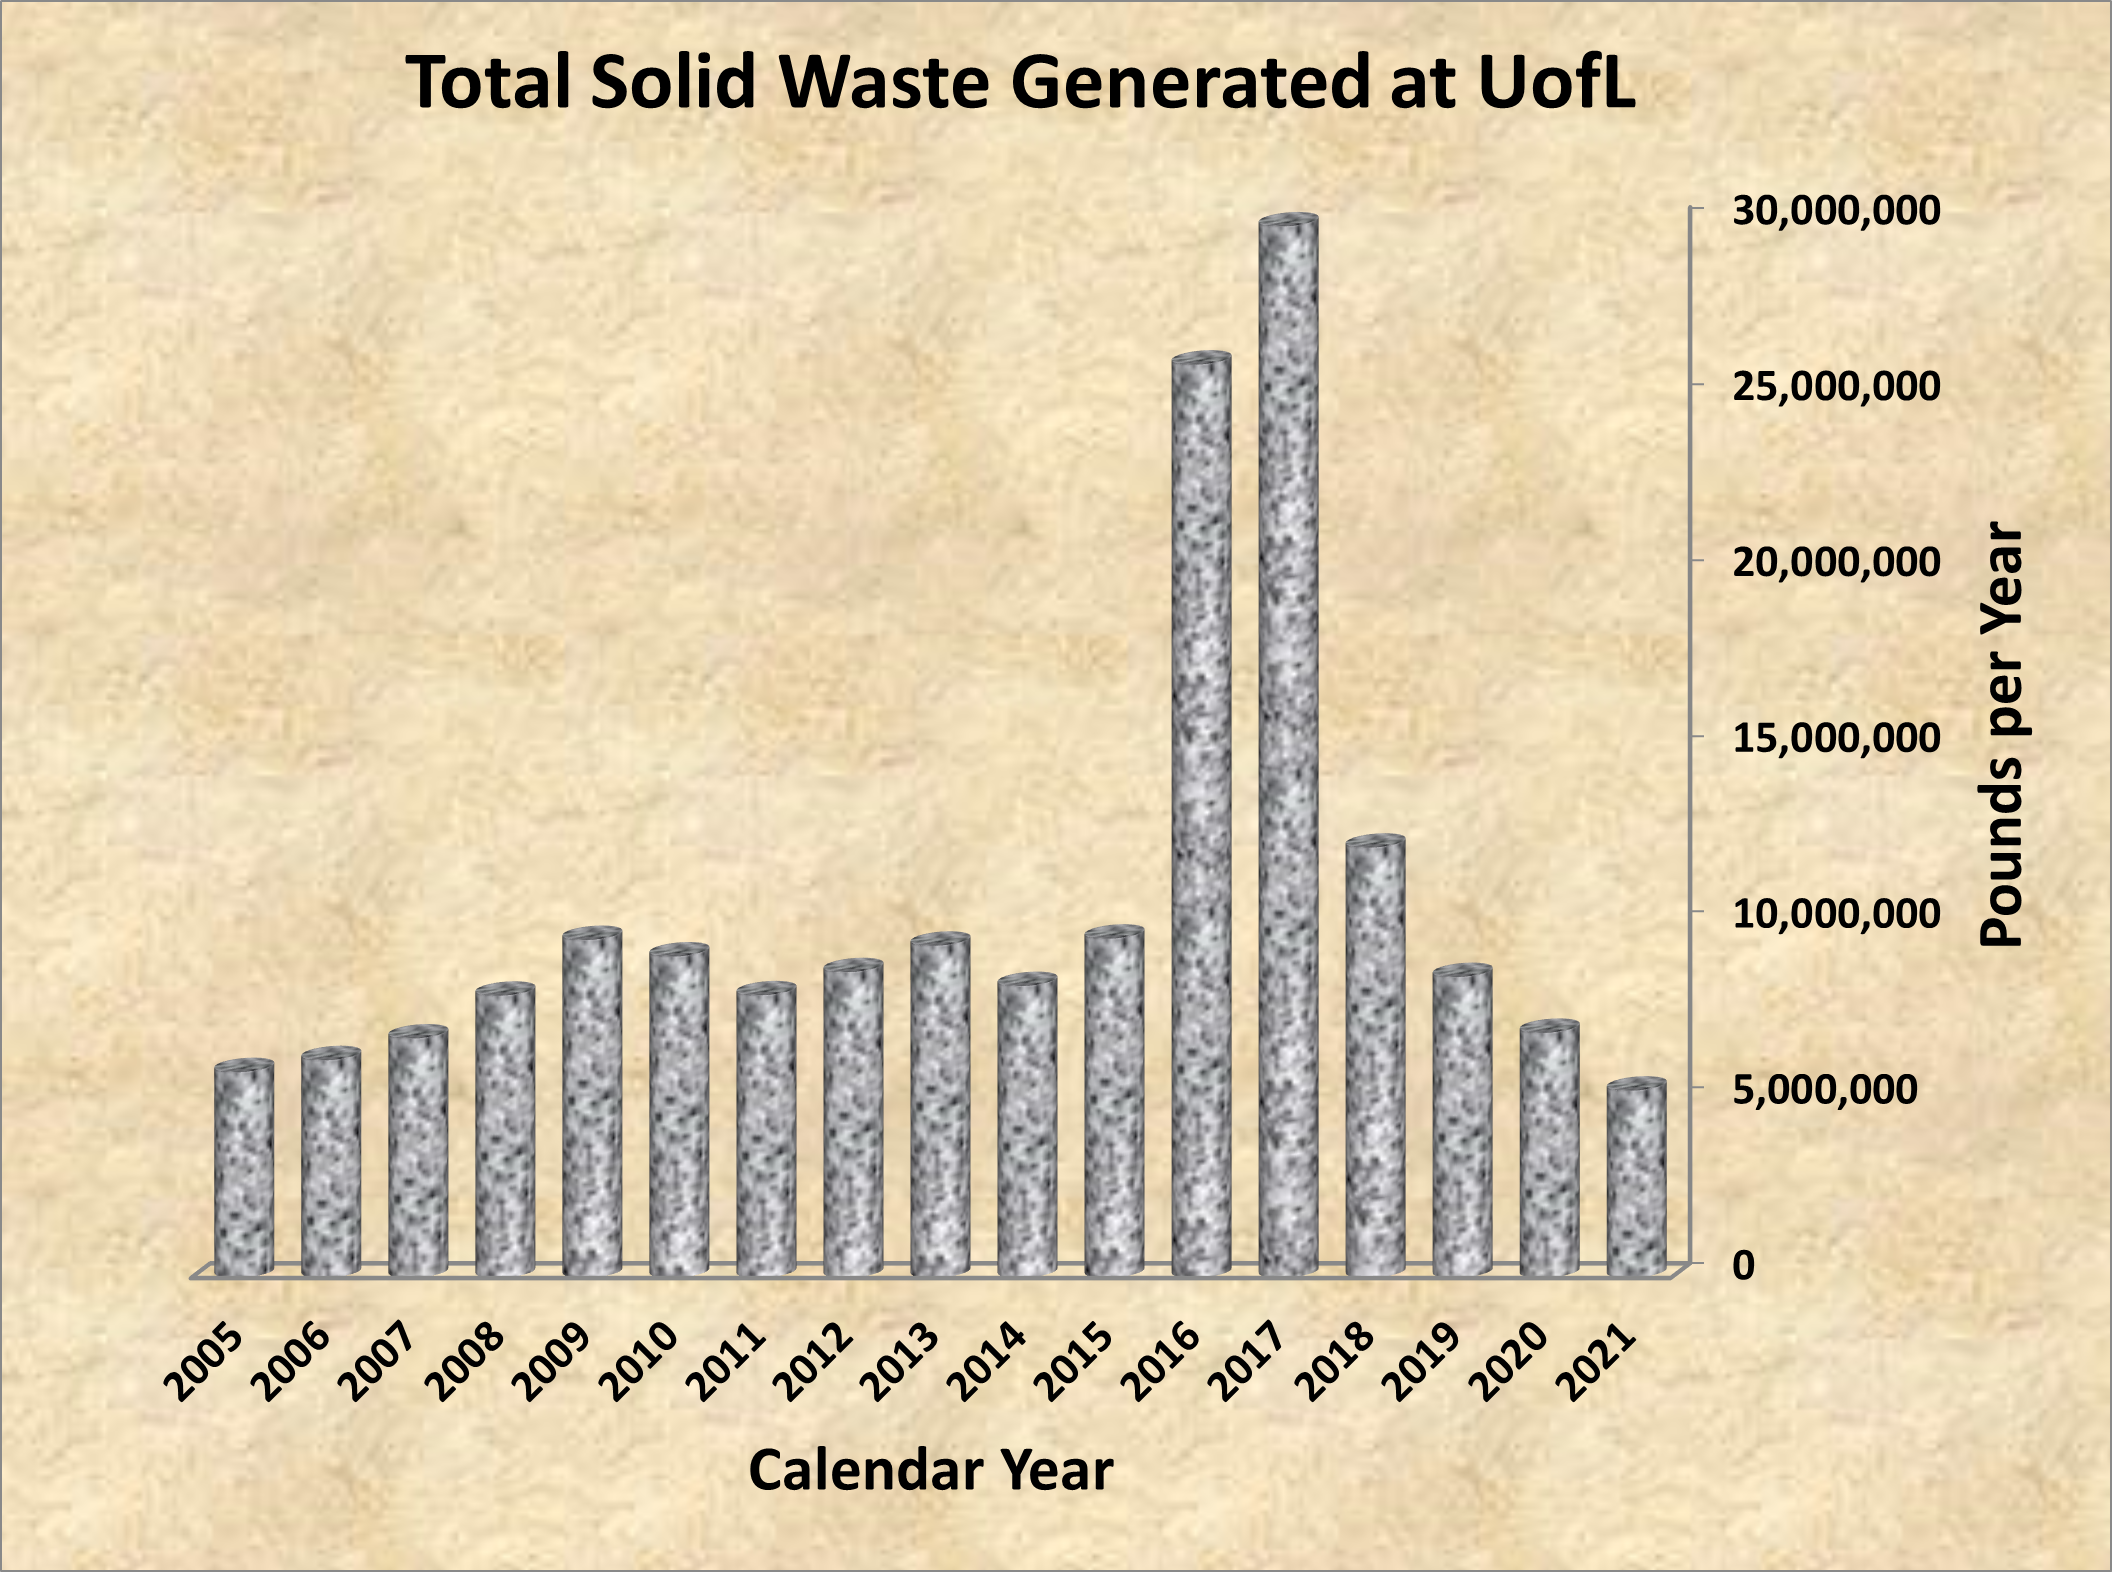 Total Waste Generated at UofL